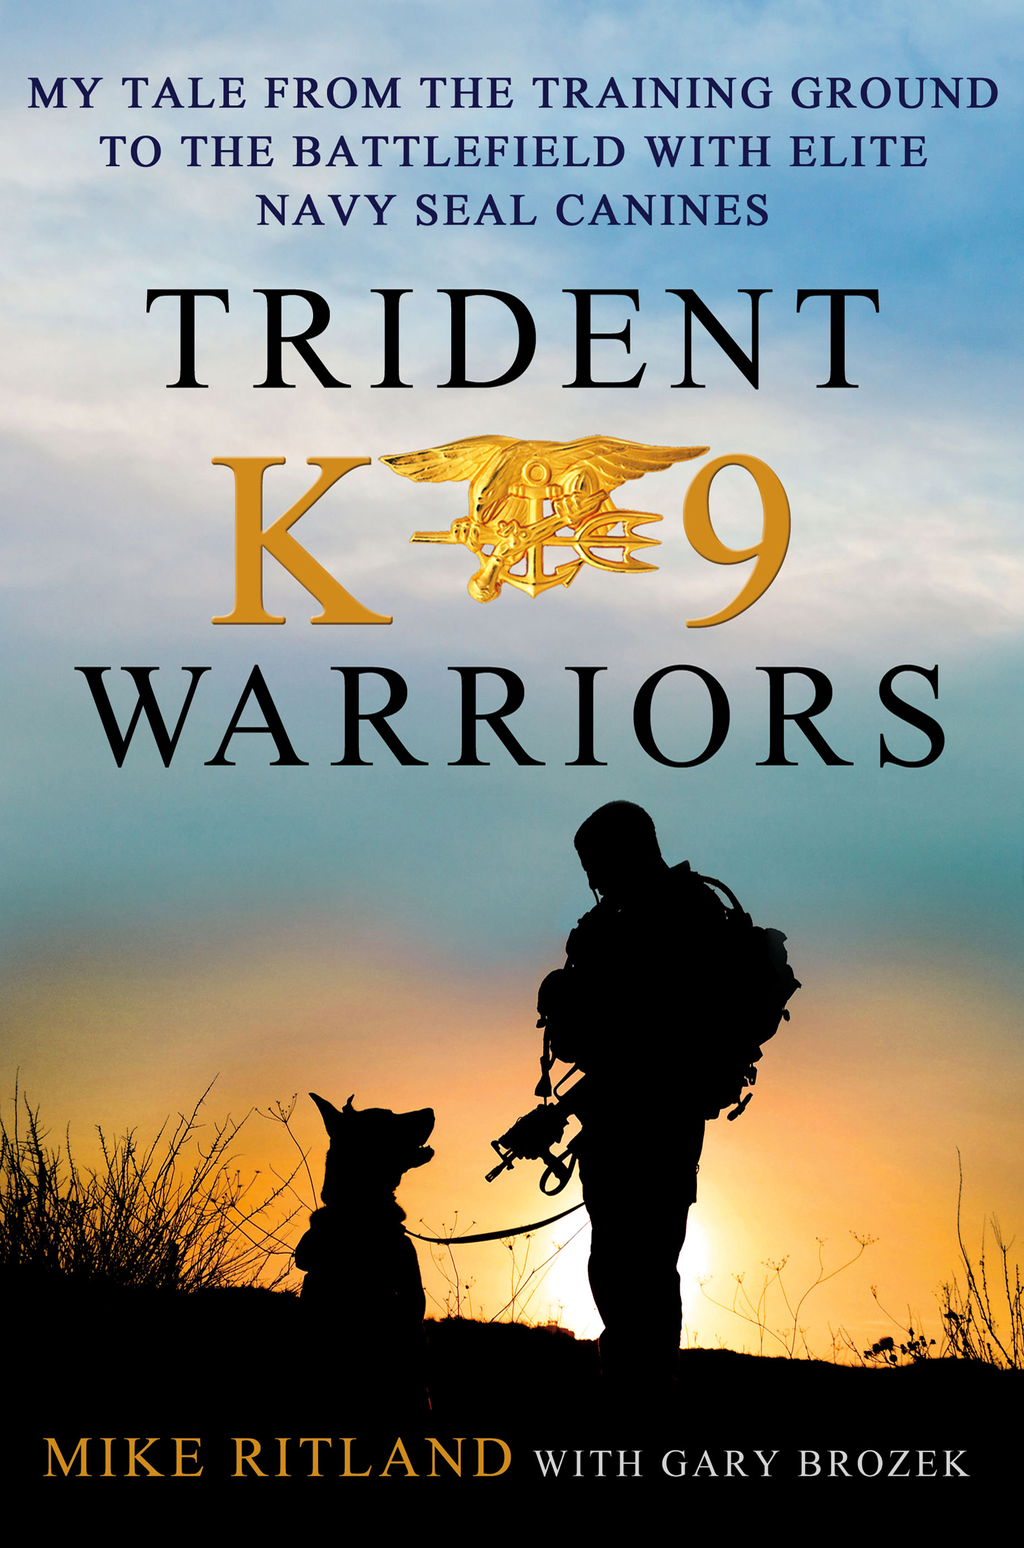 Trident K9 Warriors By: Gary Brozek,Michael Ritland